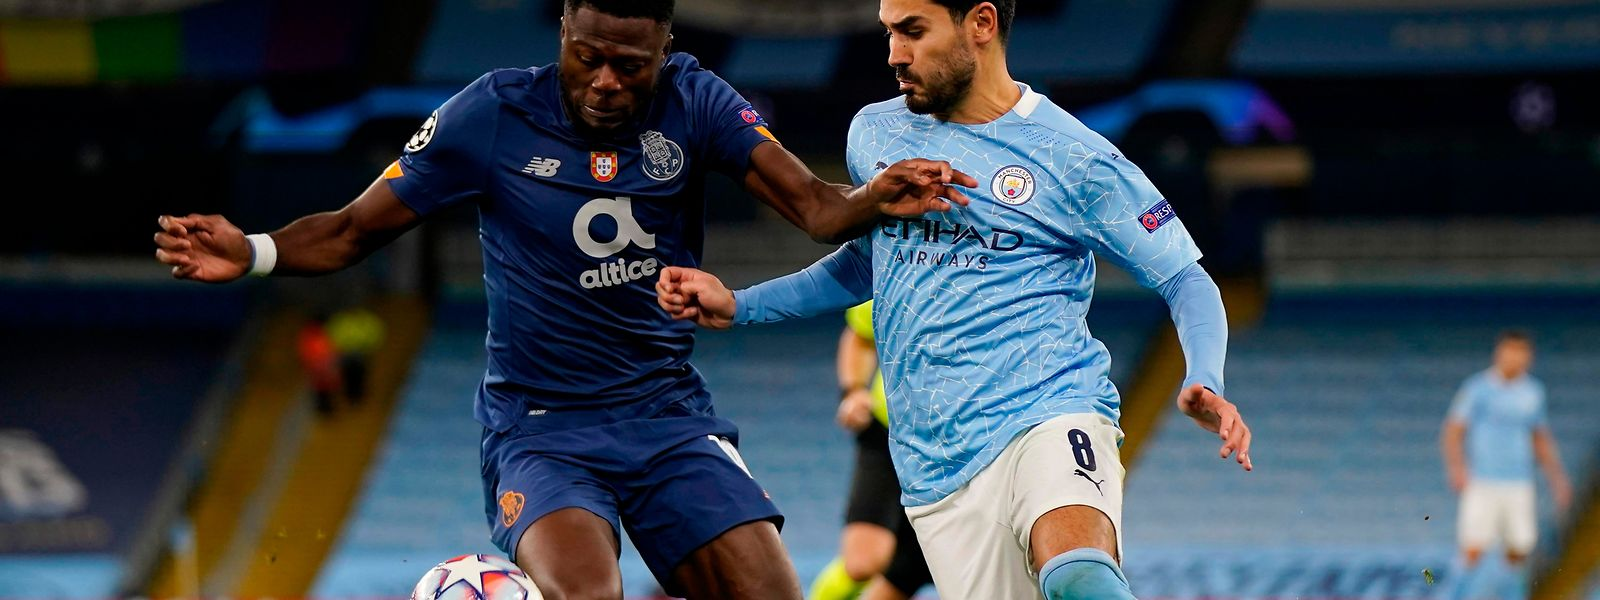 Porto's Congolese defender Chancel Mbemba (L) vies with Manchester City's German midfielder Ilkay Gundogan (R) during the UEFA Champions League football Group C match between Manchester City and Porto at the Etihad Stadium in Manchester, north west England on October 21, 2020. (Photo by Tim Keeton / POOL / AFP)